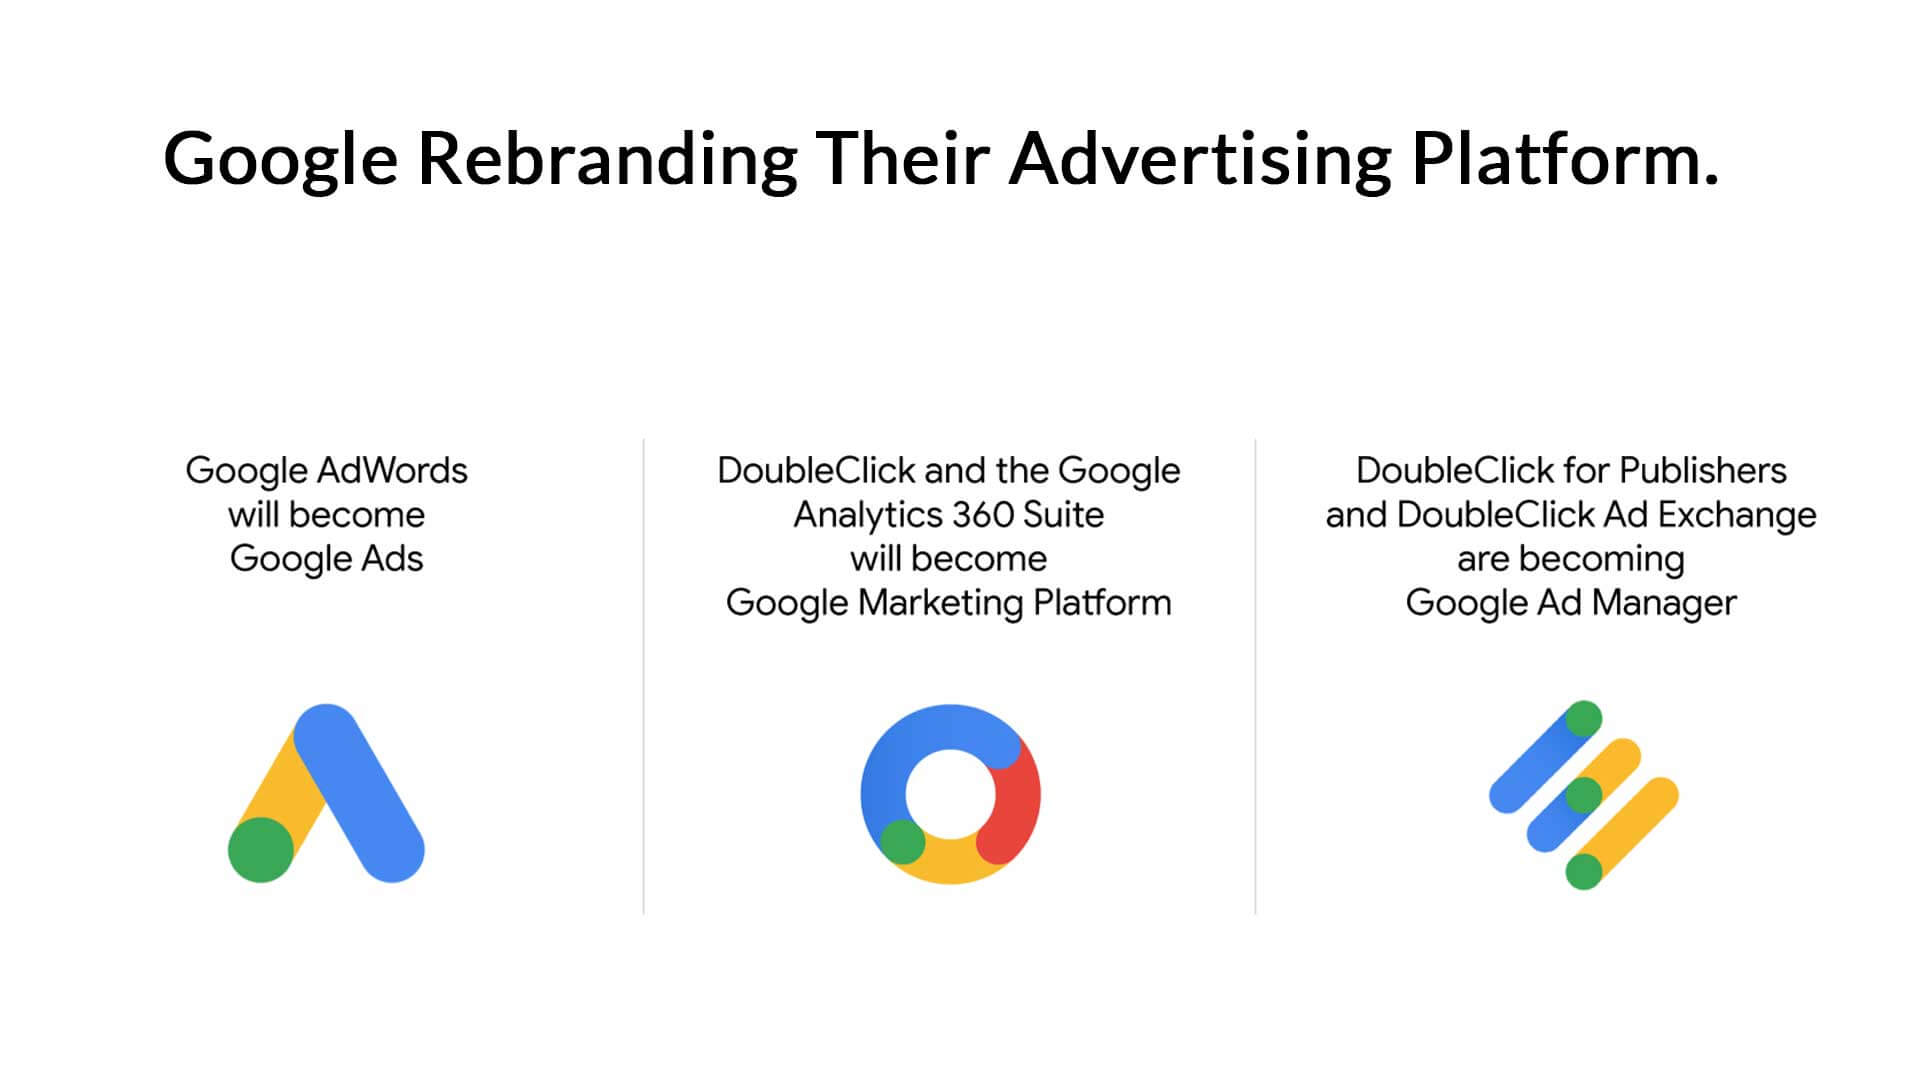 Google Rebrand their ad platform